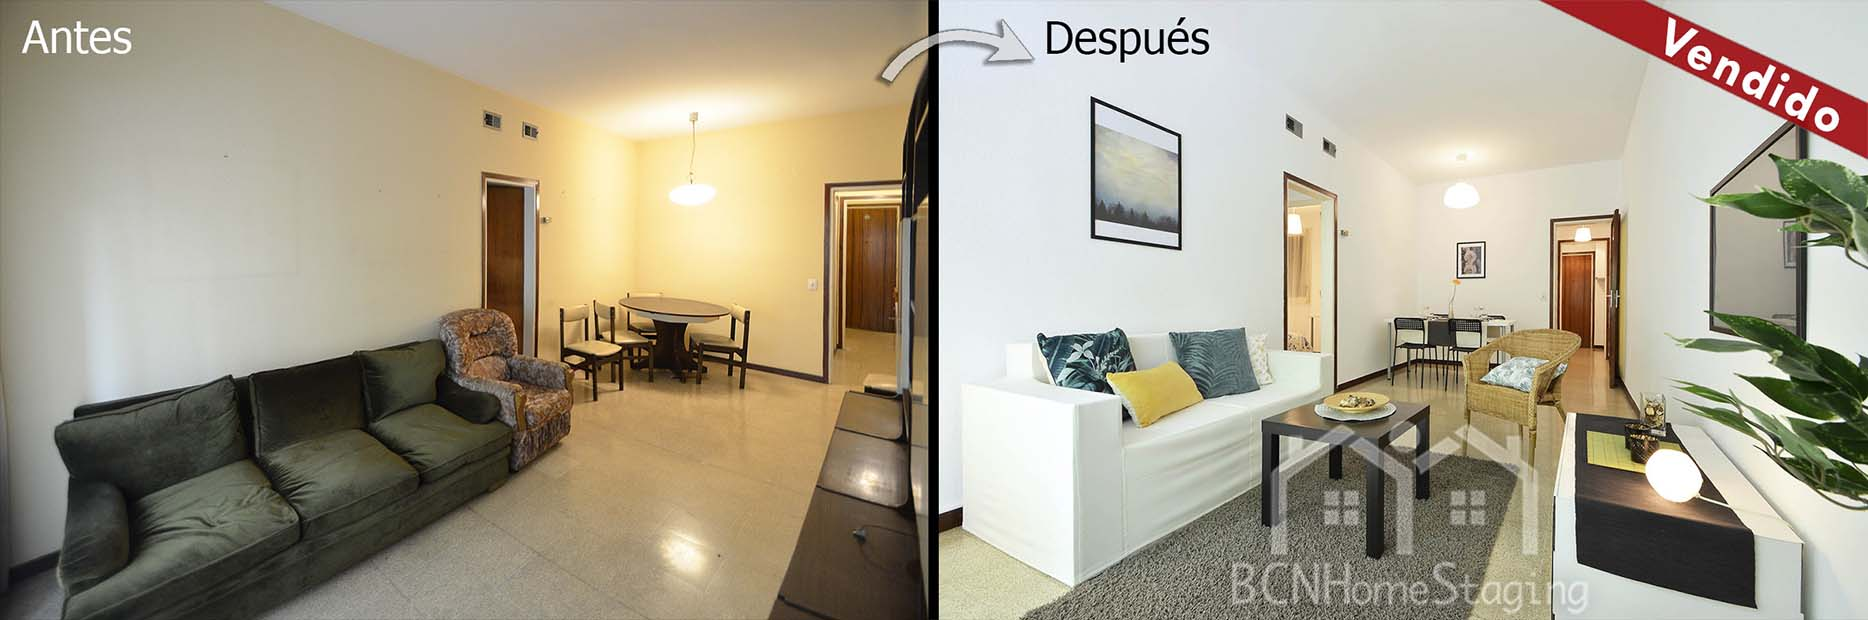 home-staging-barcelona-dormitorio-antes-despues